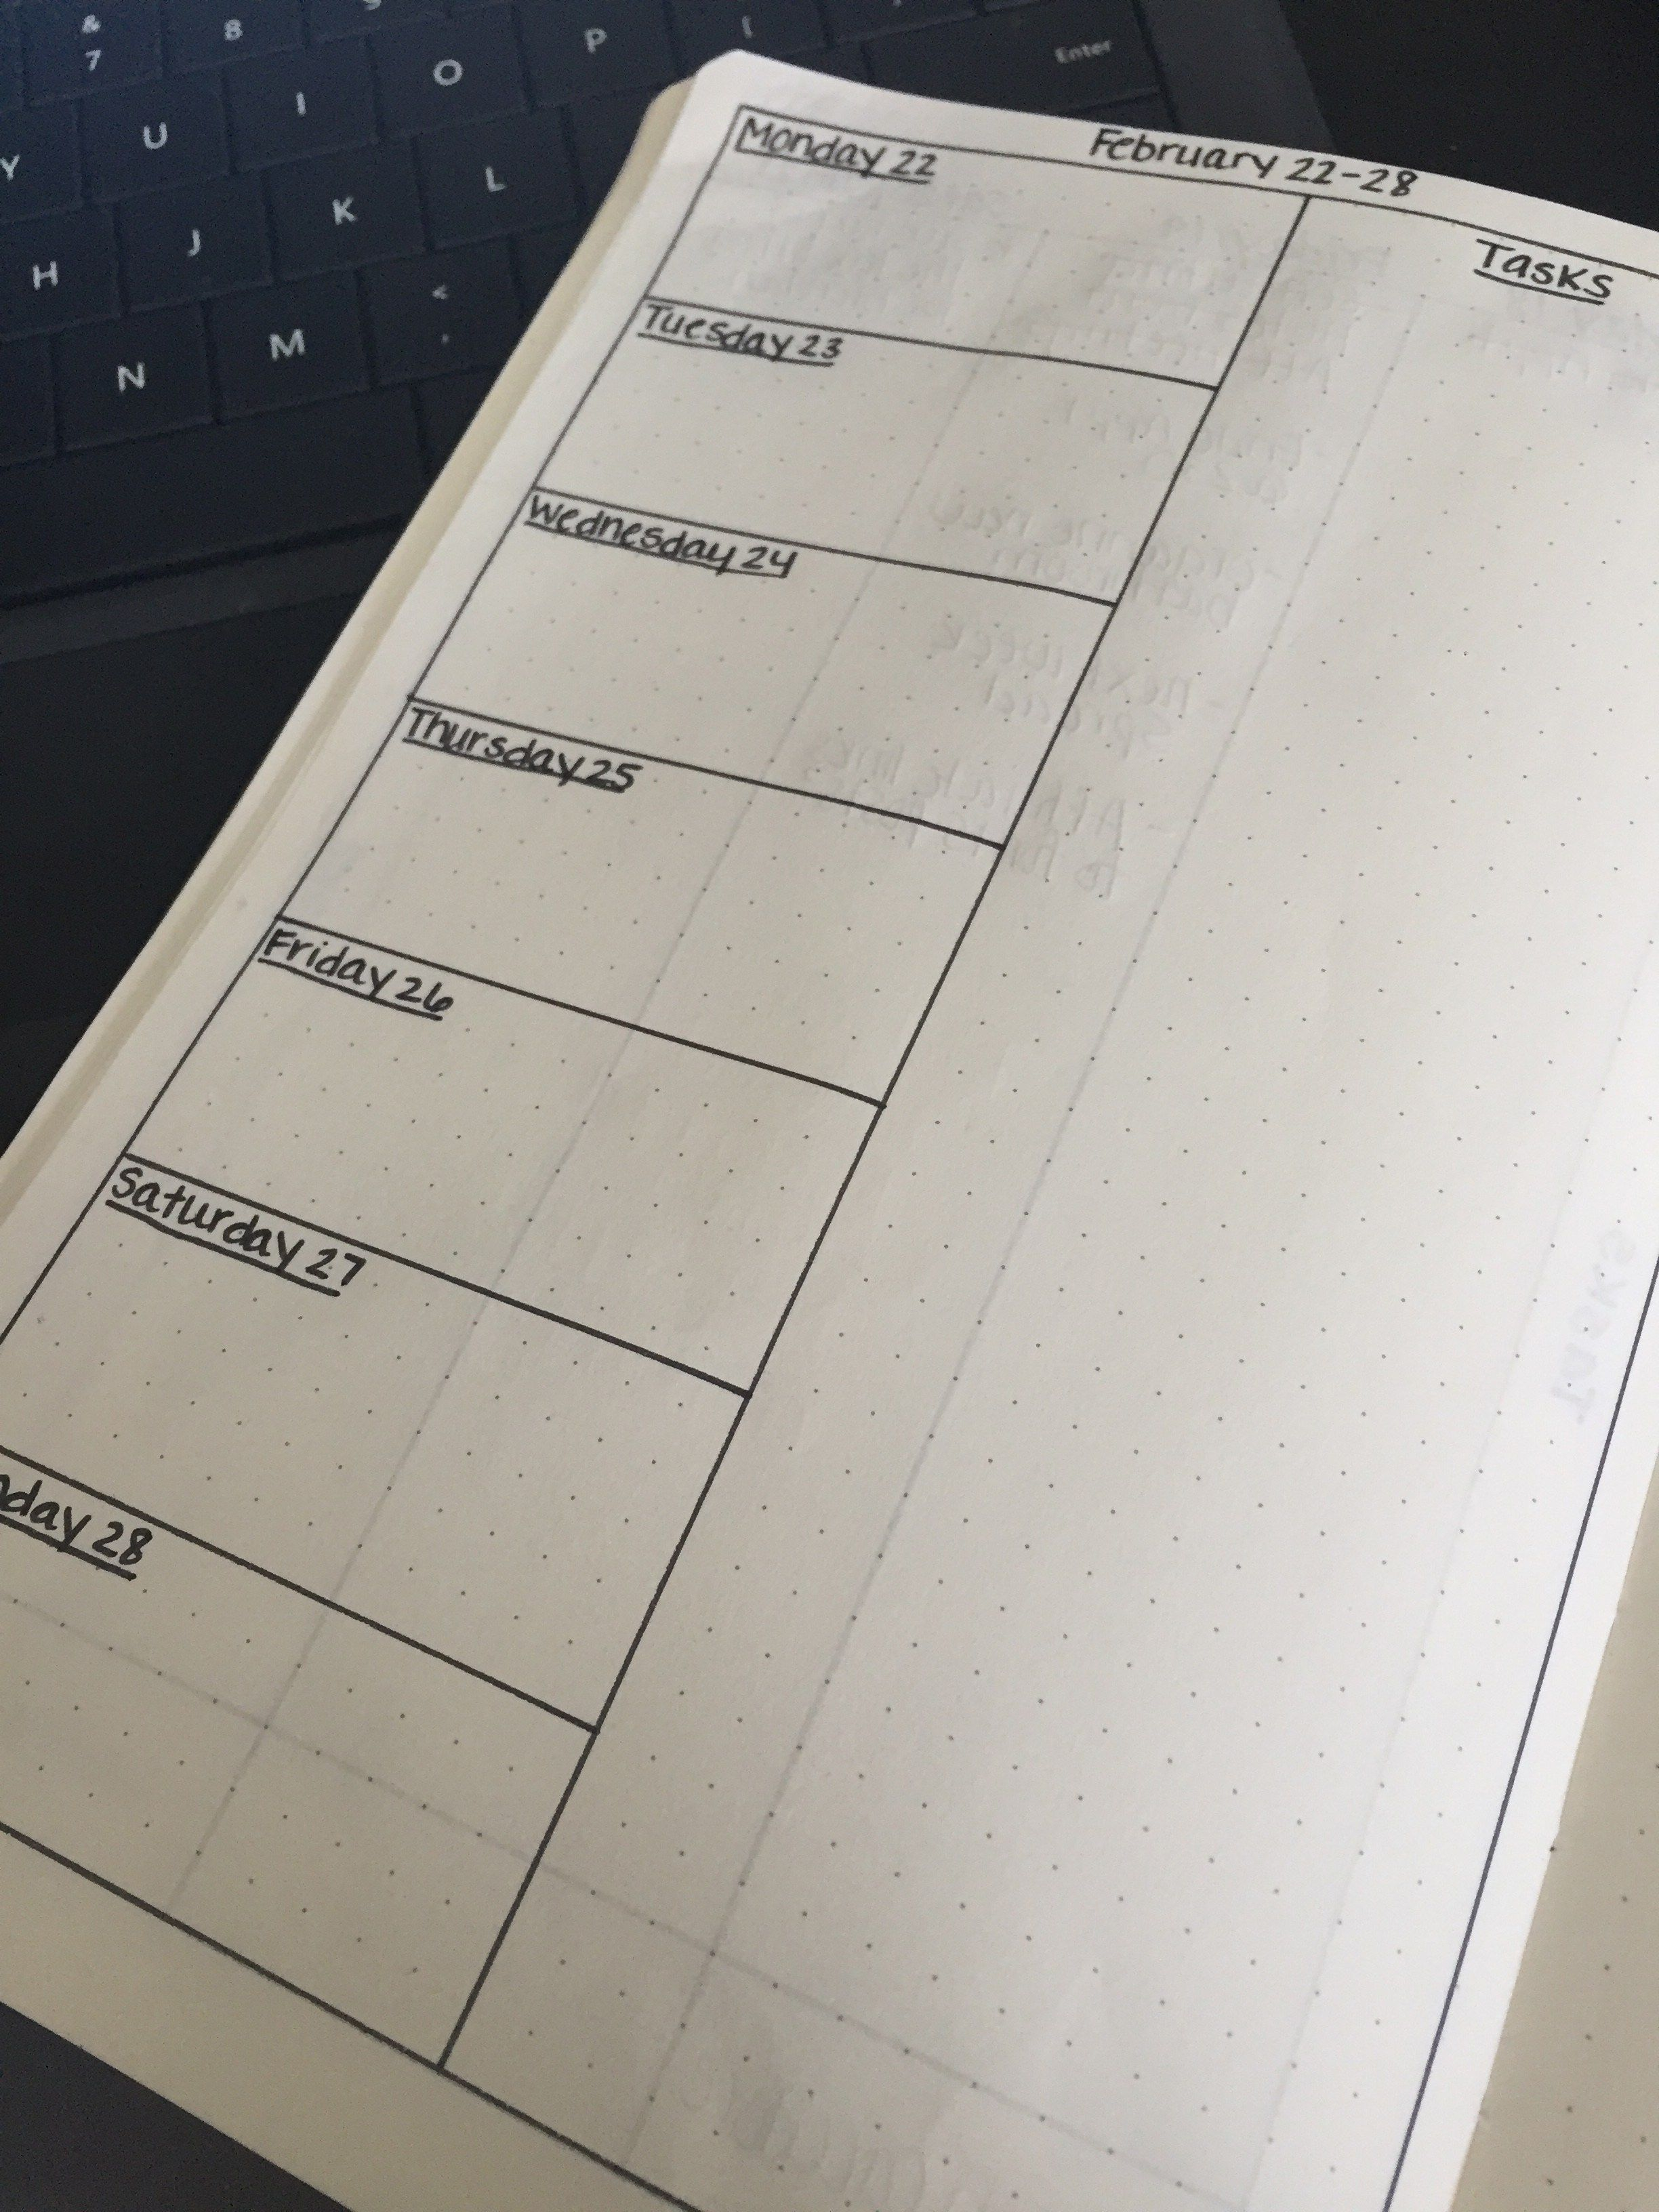 My current weekly spread includes a split page, half being a calendar and the other half left for my to-do list.